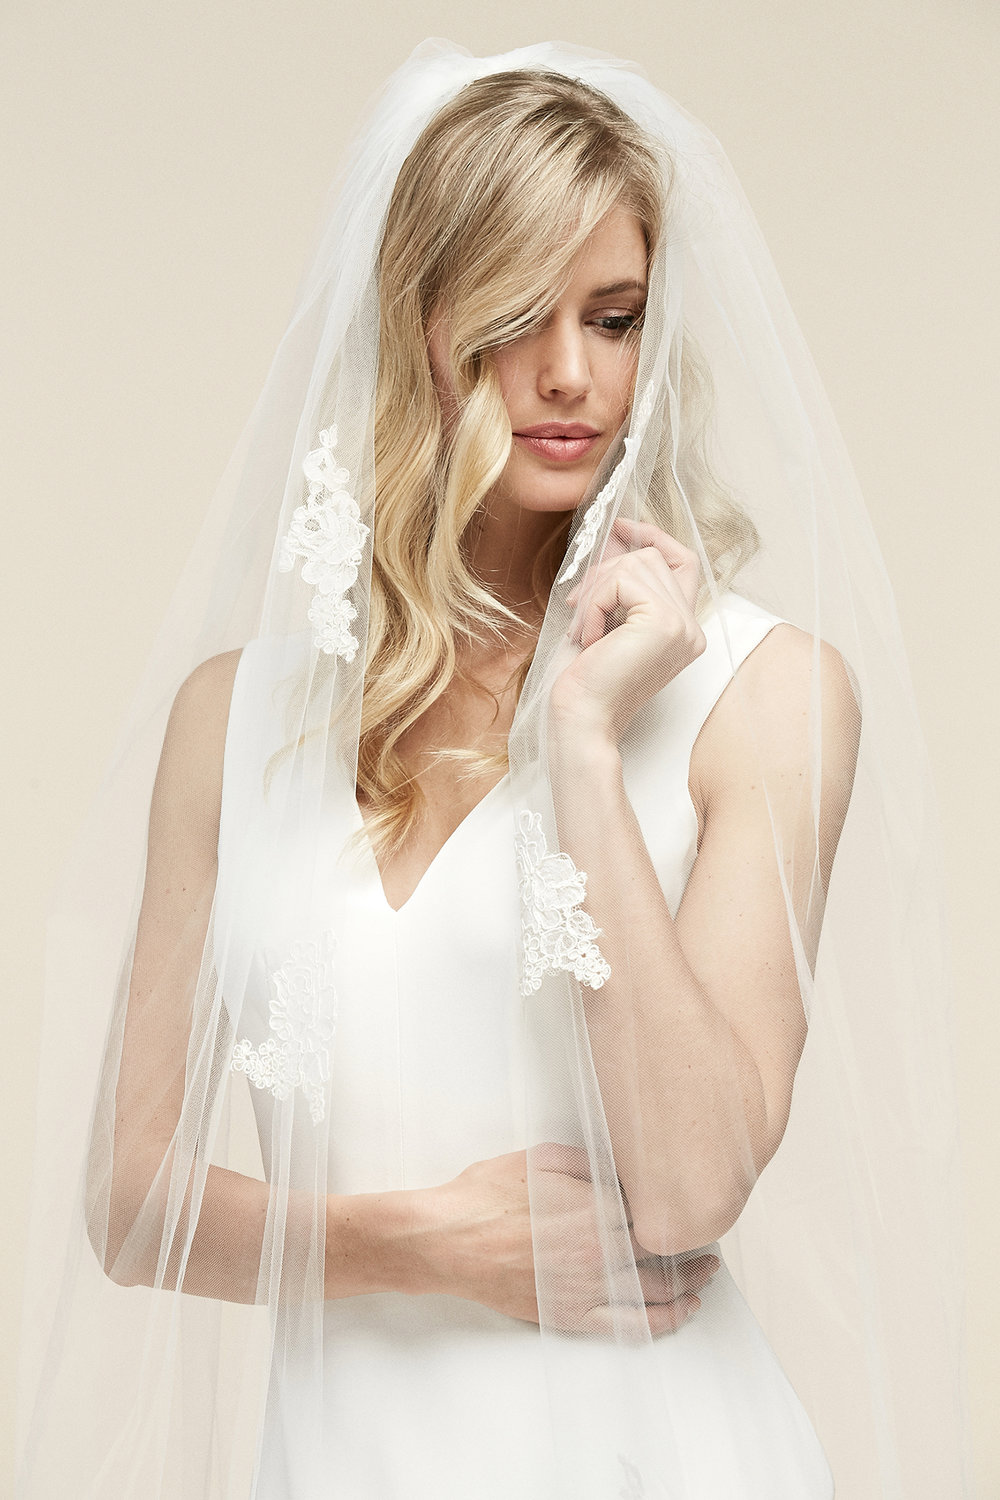 Lyric Veil   Details- Alençon lace scattered throughout  Available in all colors and lengths